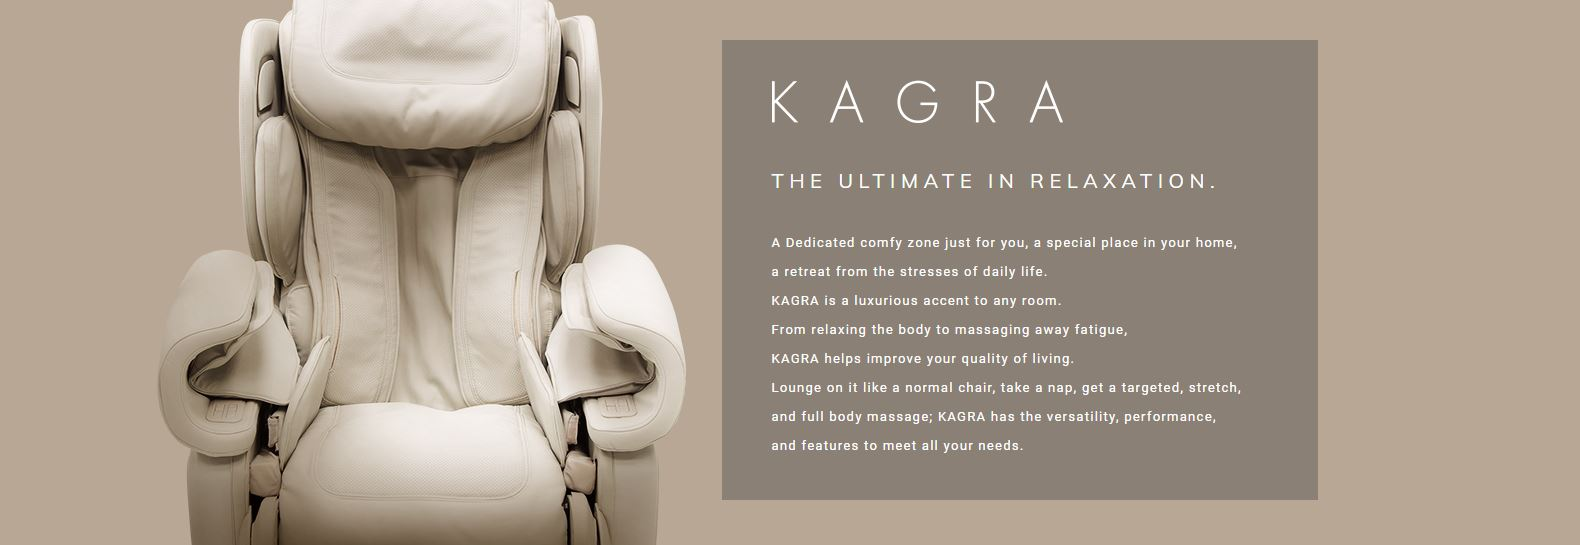 Kagra Massage Chair Features